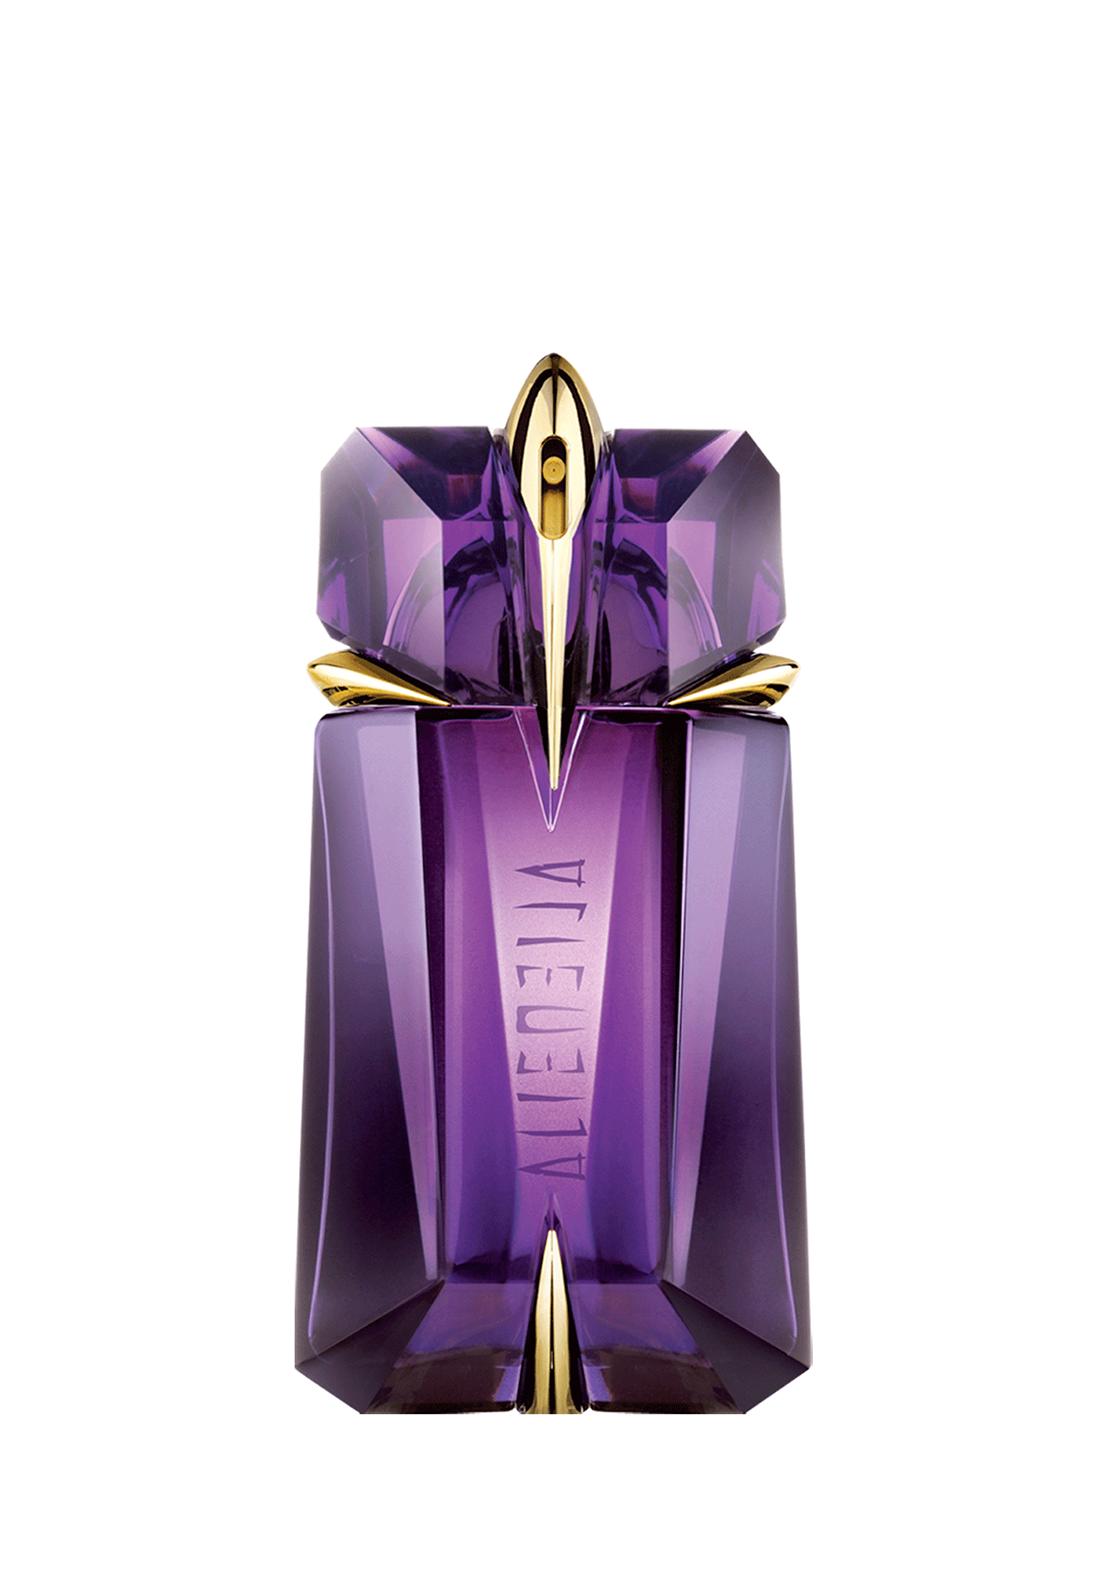 Thierry Mugler Alien Eau De Parfum 30ml Non Refillable